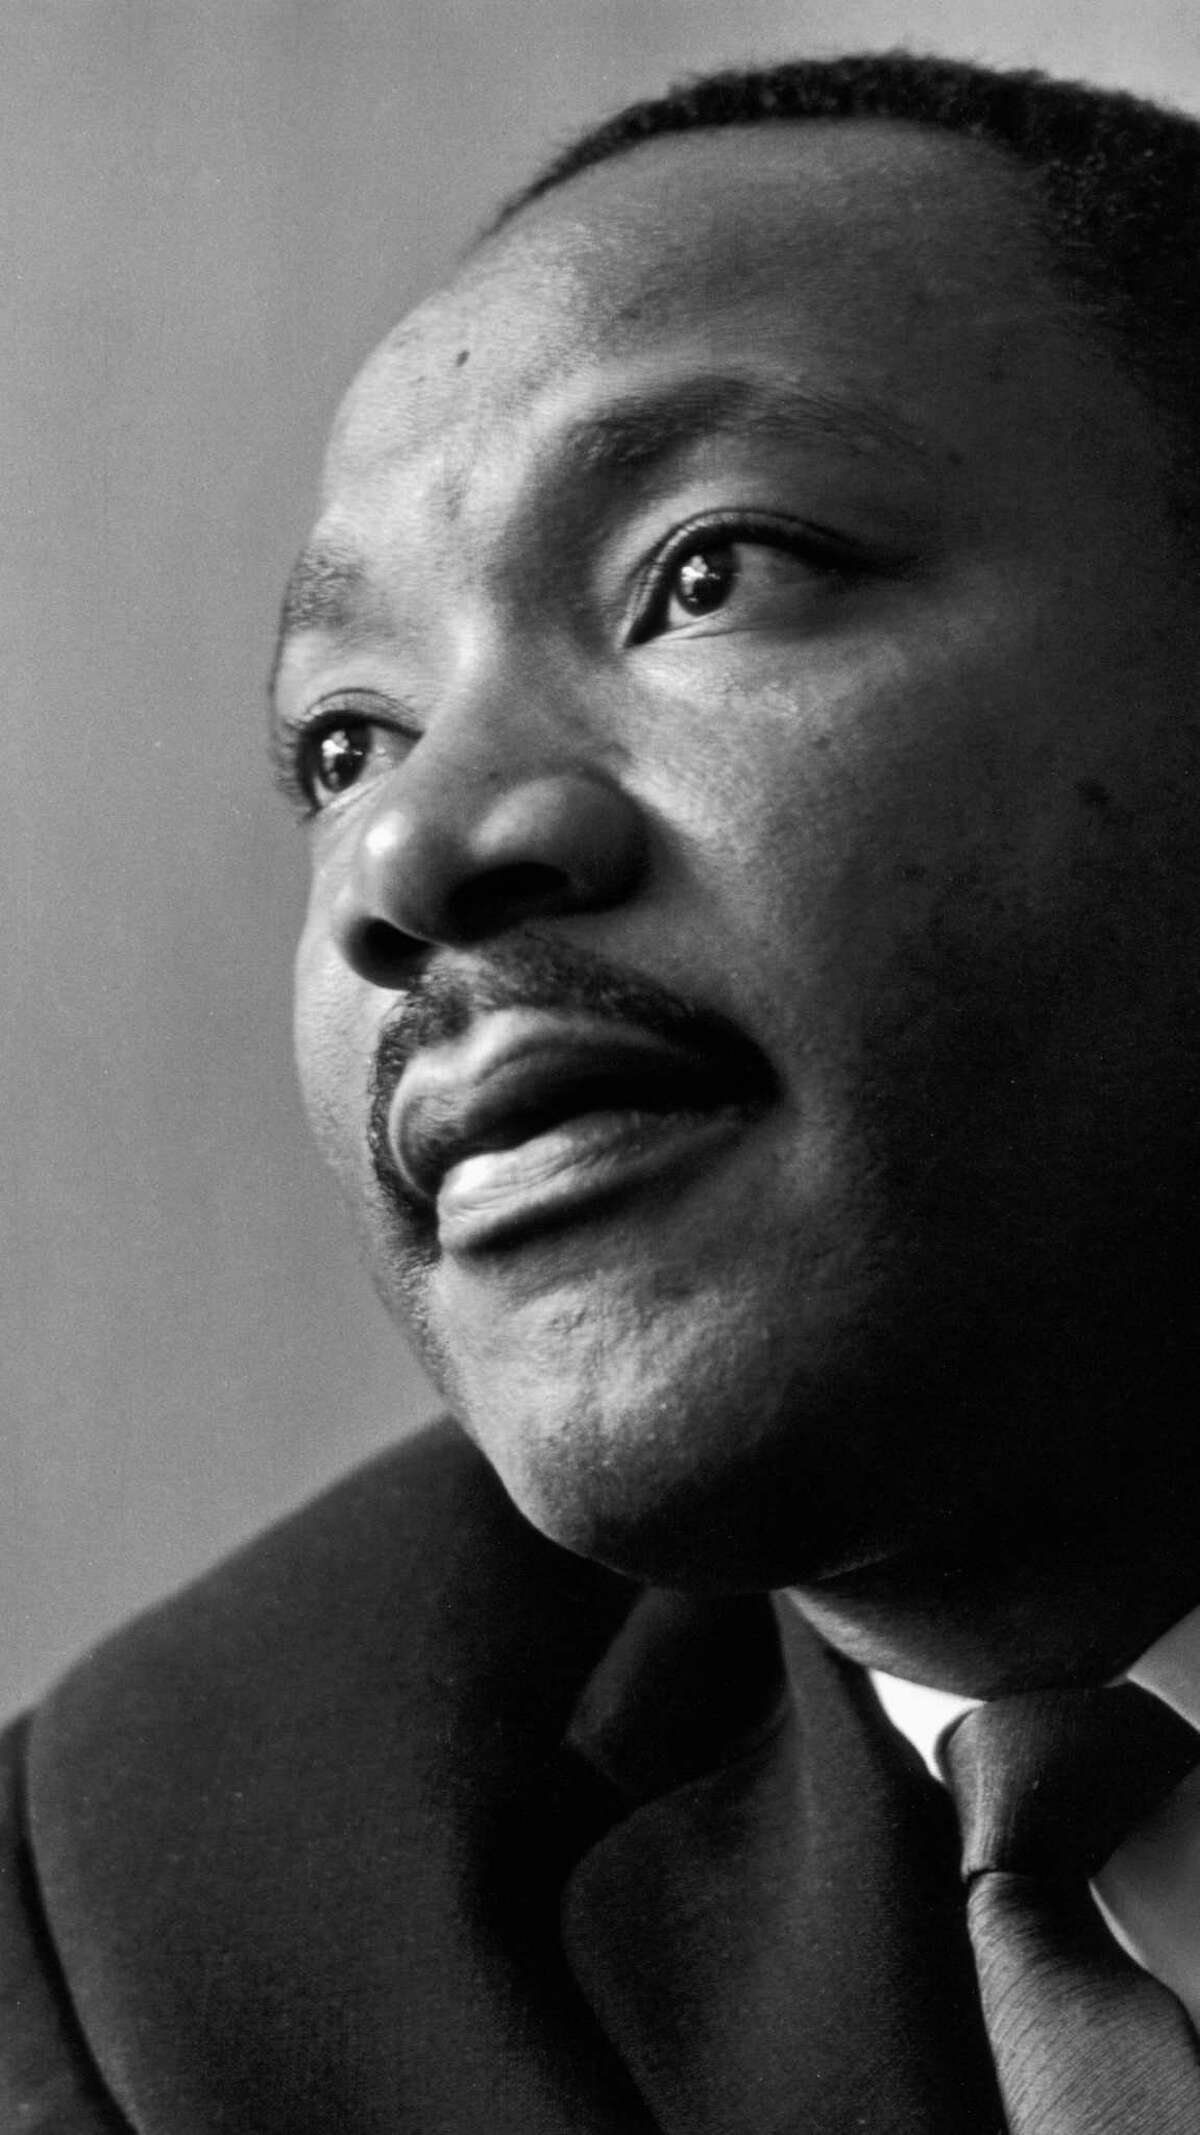 """Dr. Martin Luther King Jr. believed people could achieve a """"beloved community."""""""